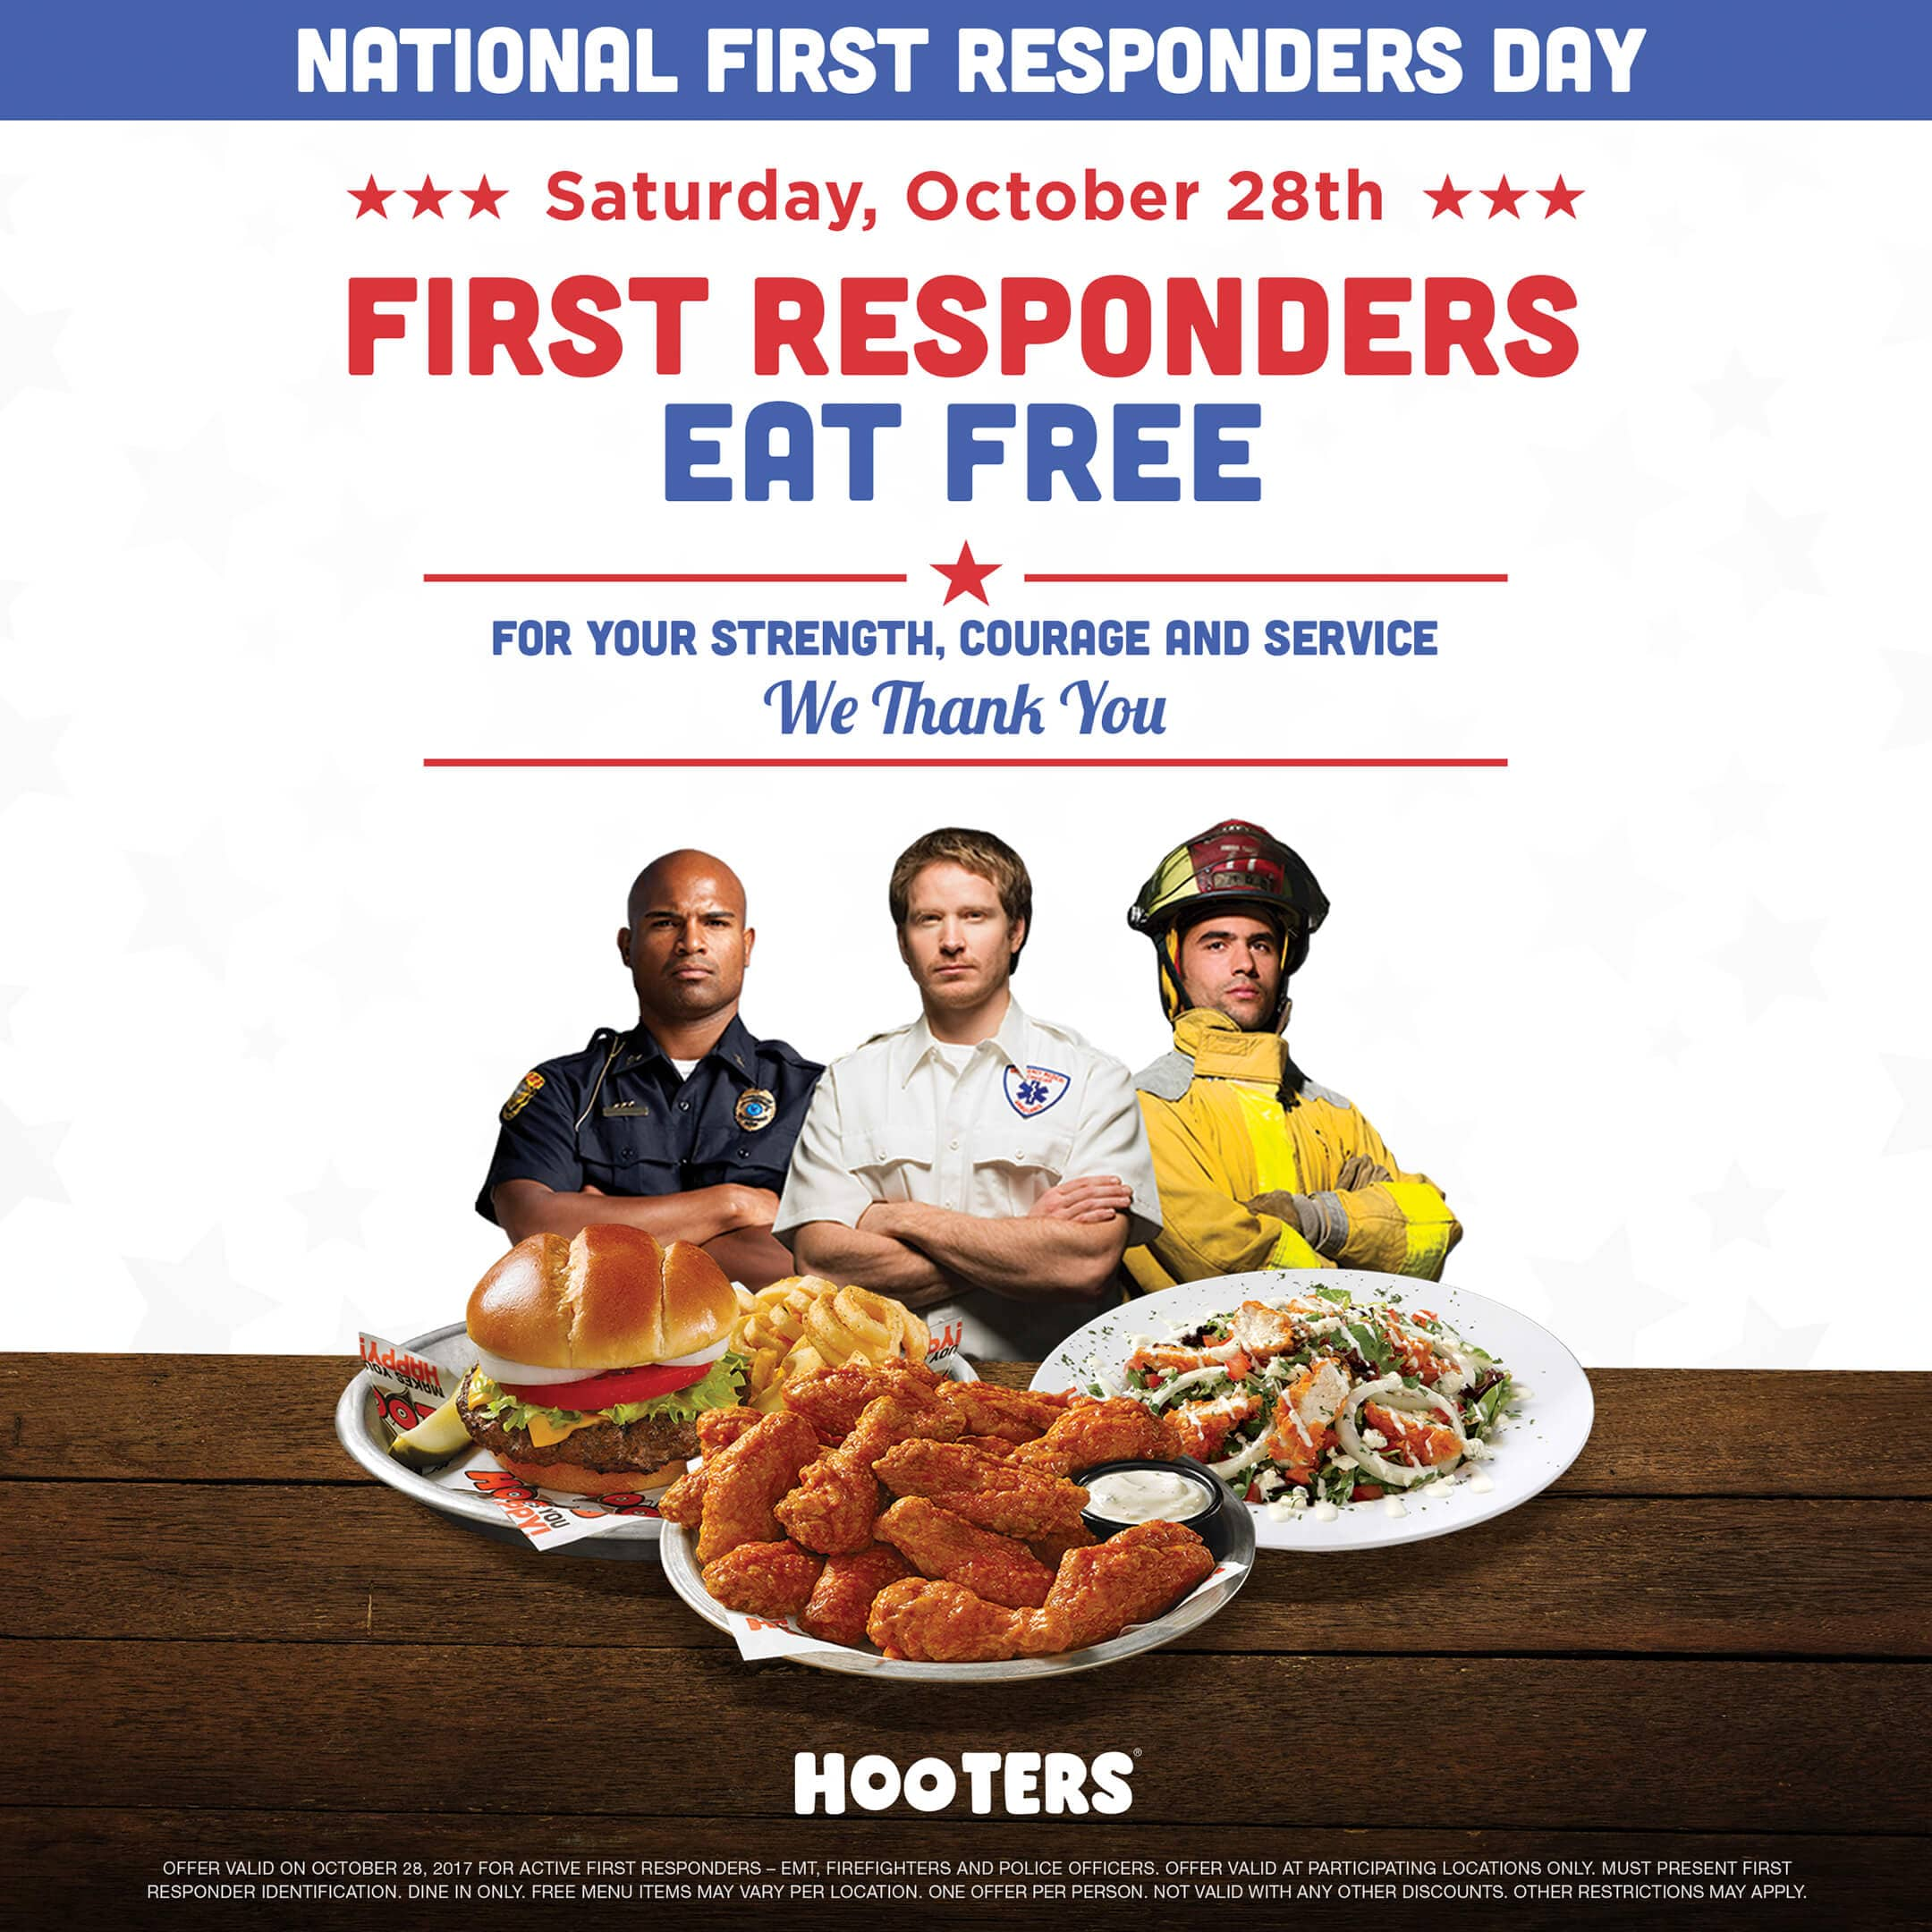 House On Hooter Hill first responders eat free at hooters on october 28 | hooters